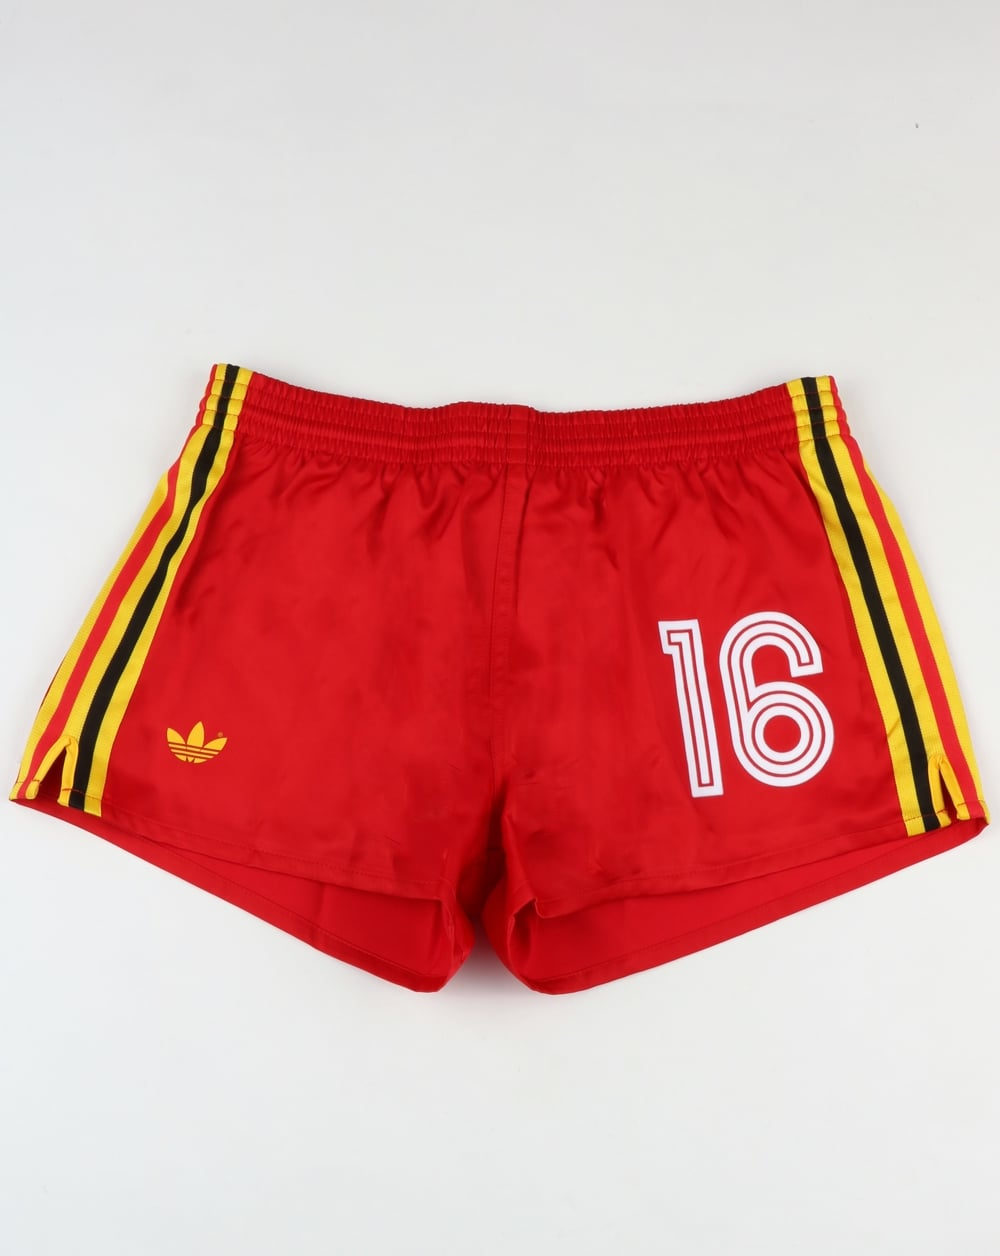 eee60811fb Adidas Originals Belgium Shorts Victory Red,football,retro,shiny,mens